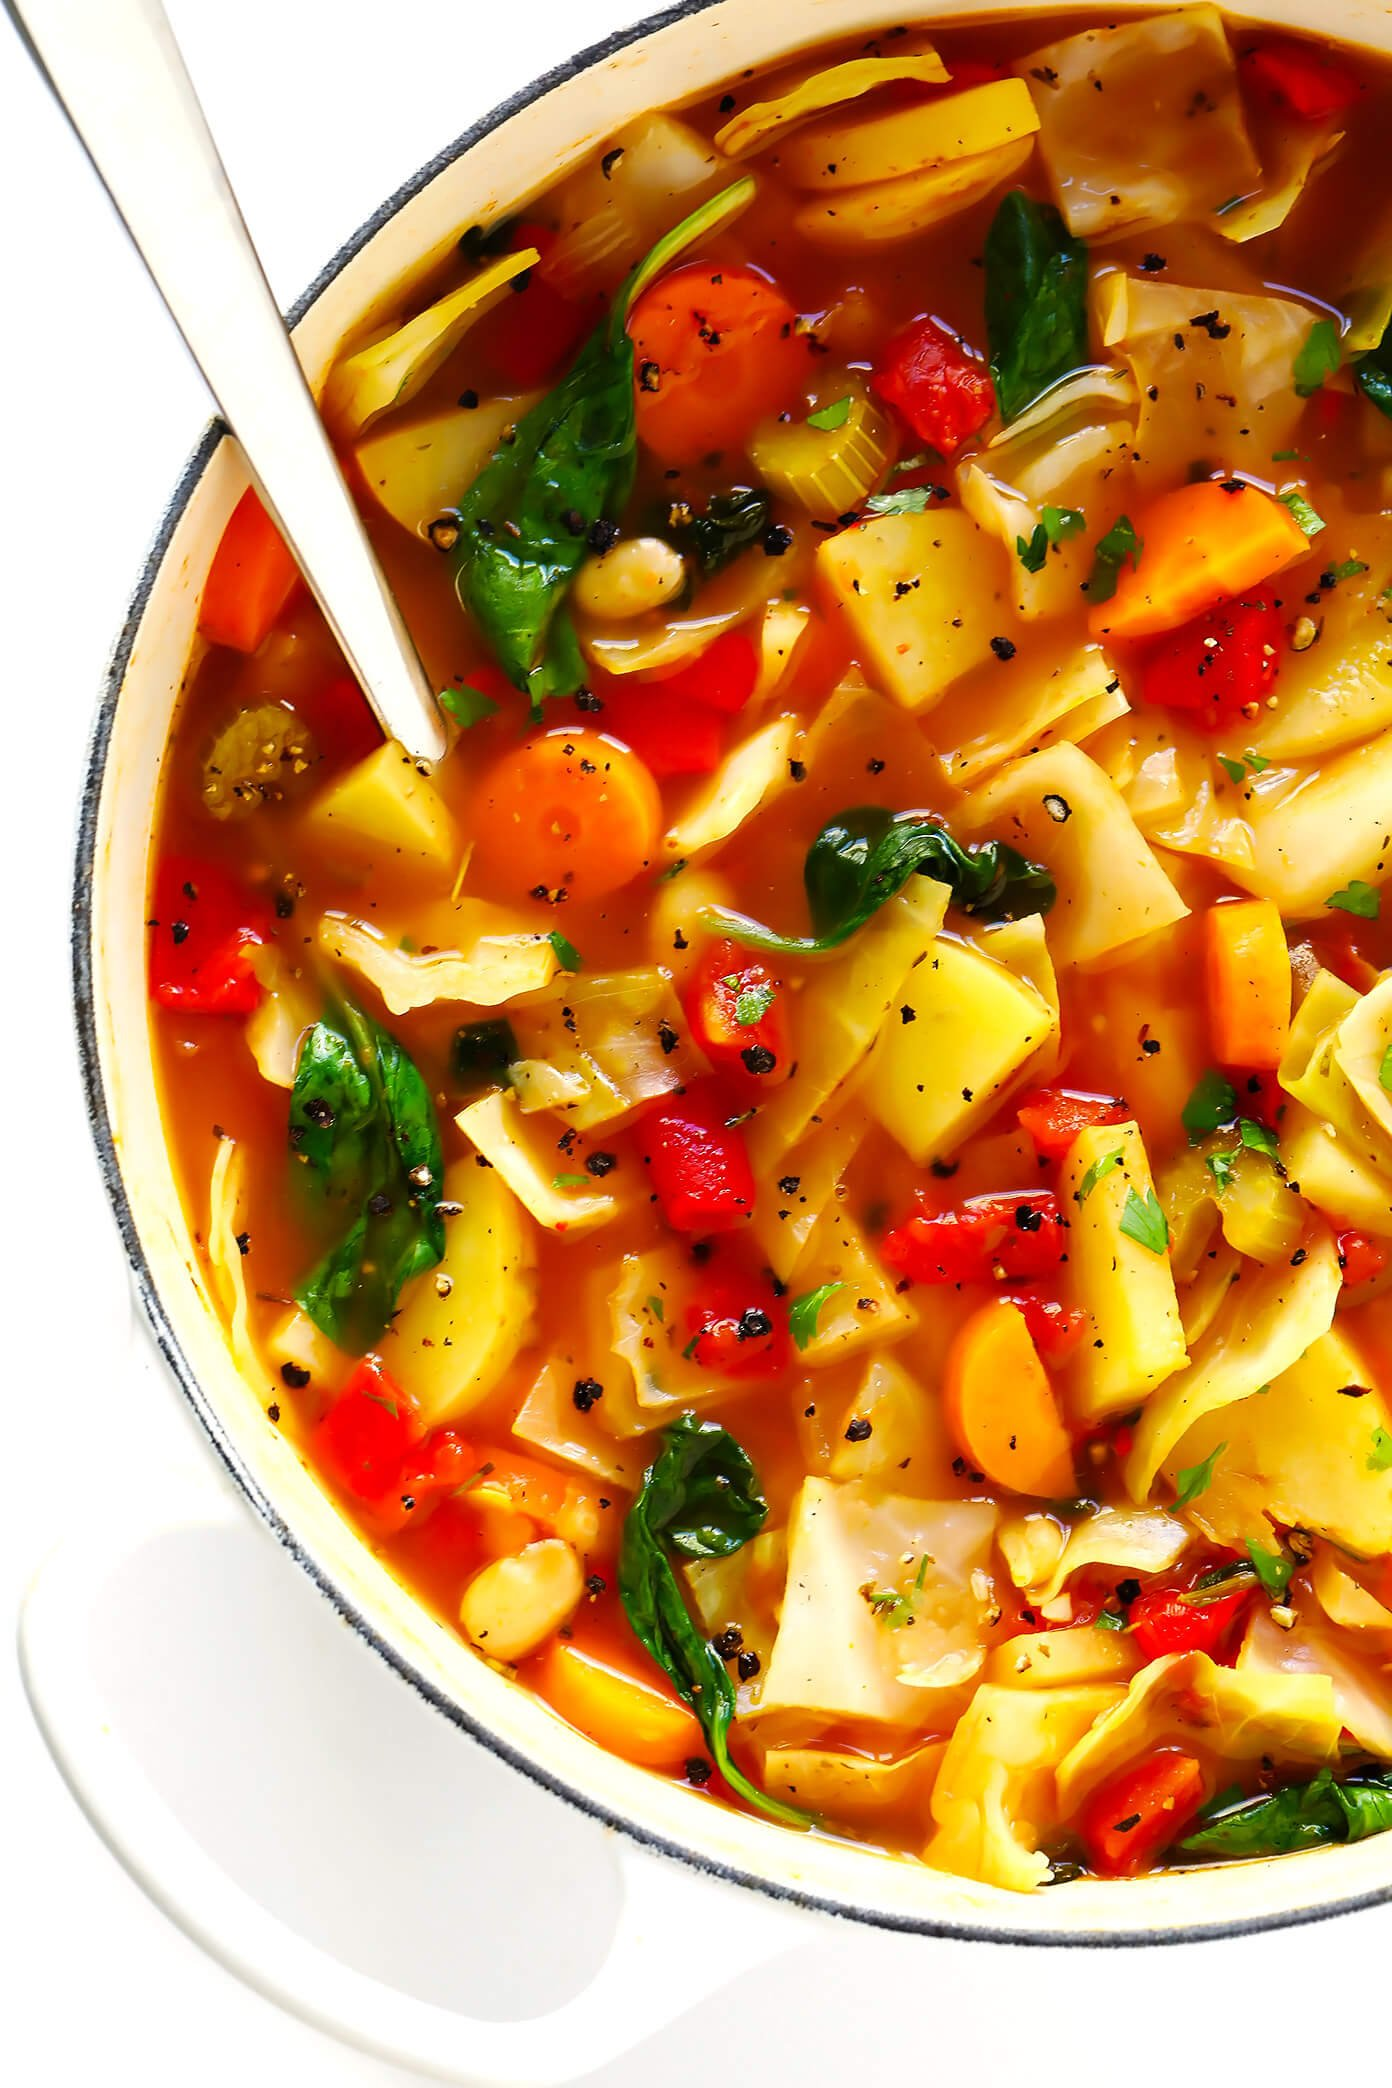 healthy tomato soup recipes weight loss